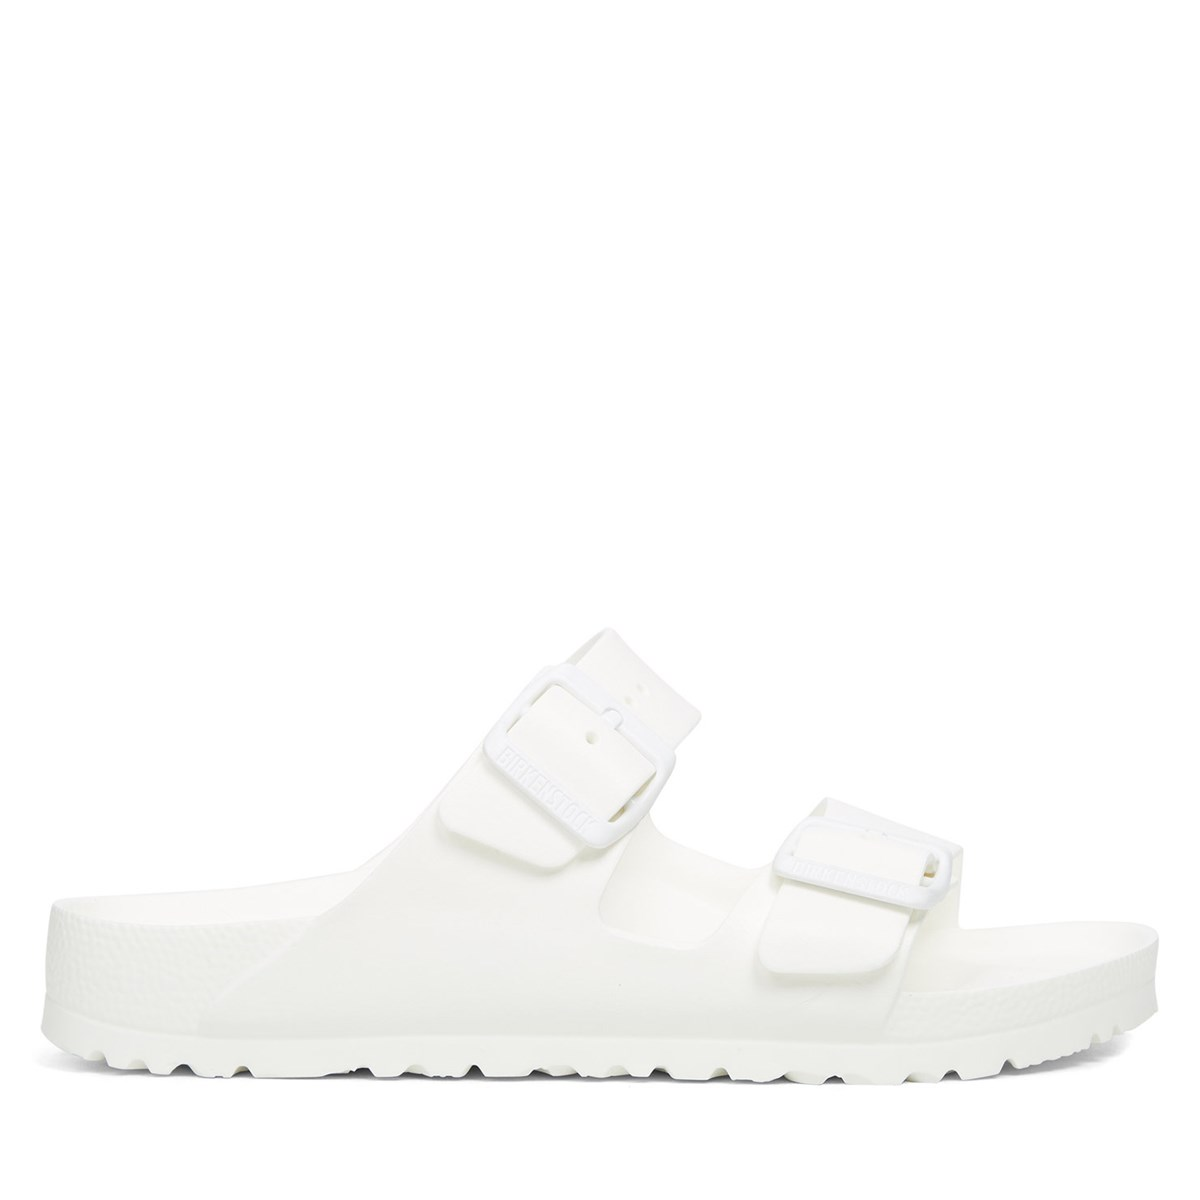 Women's Arizona EVA Sandals in White